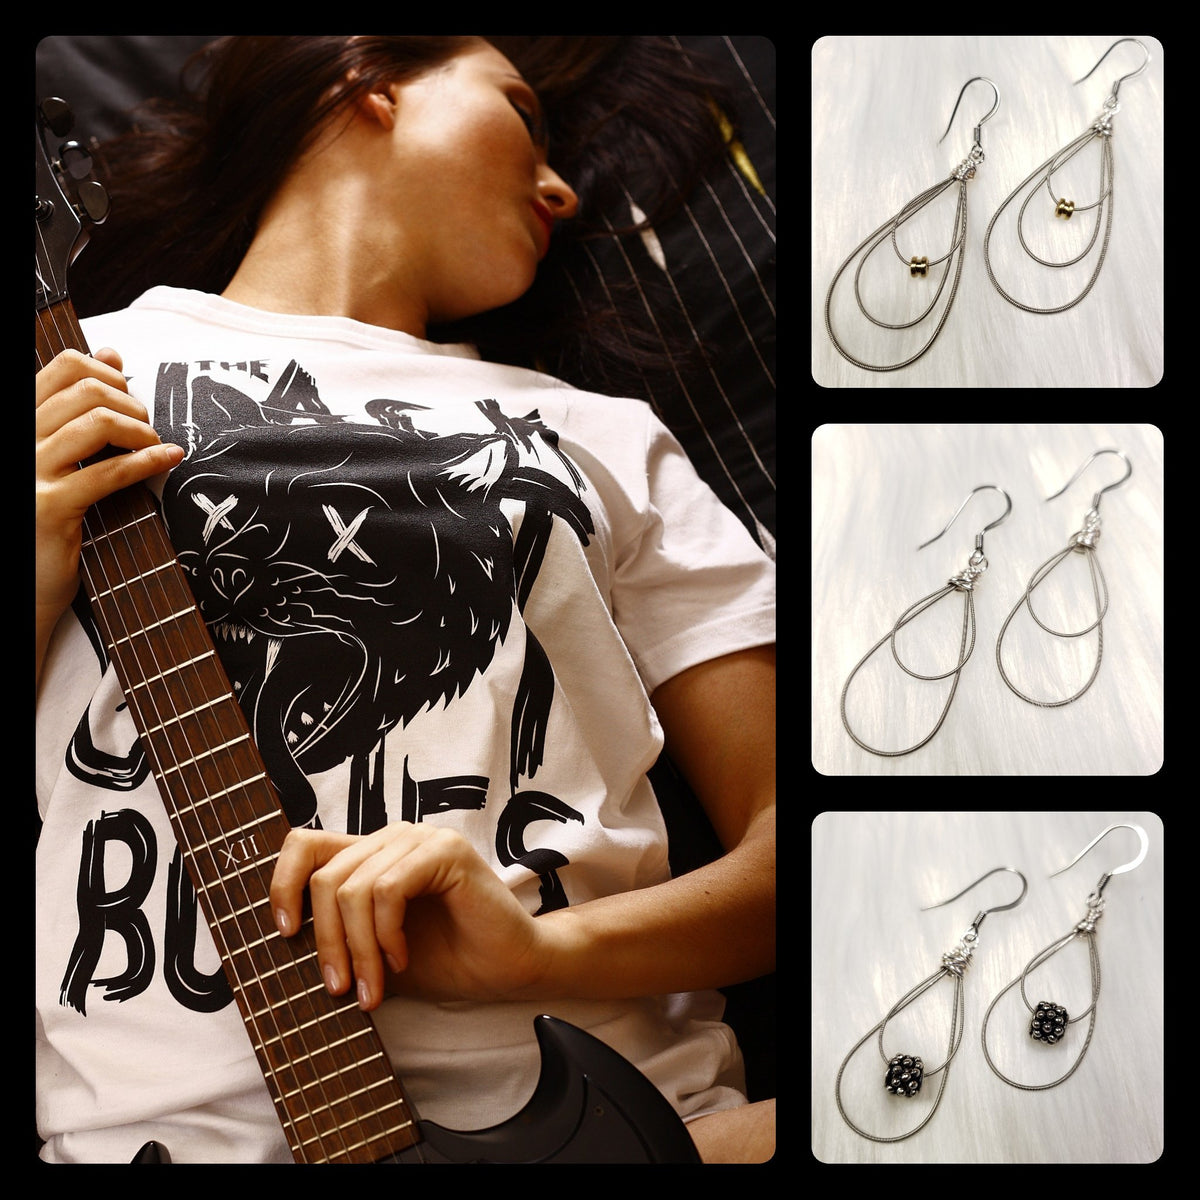 Handcrafted One-of-a-kind Earrings Created From Guitar Strings